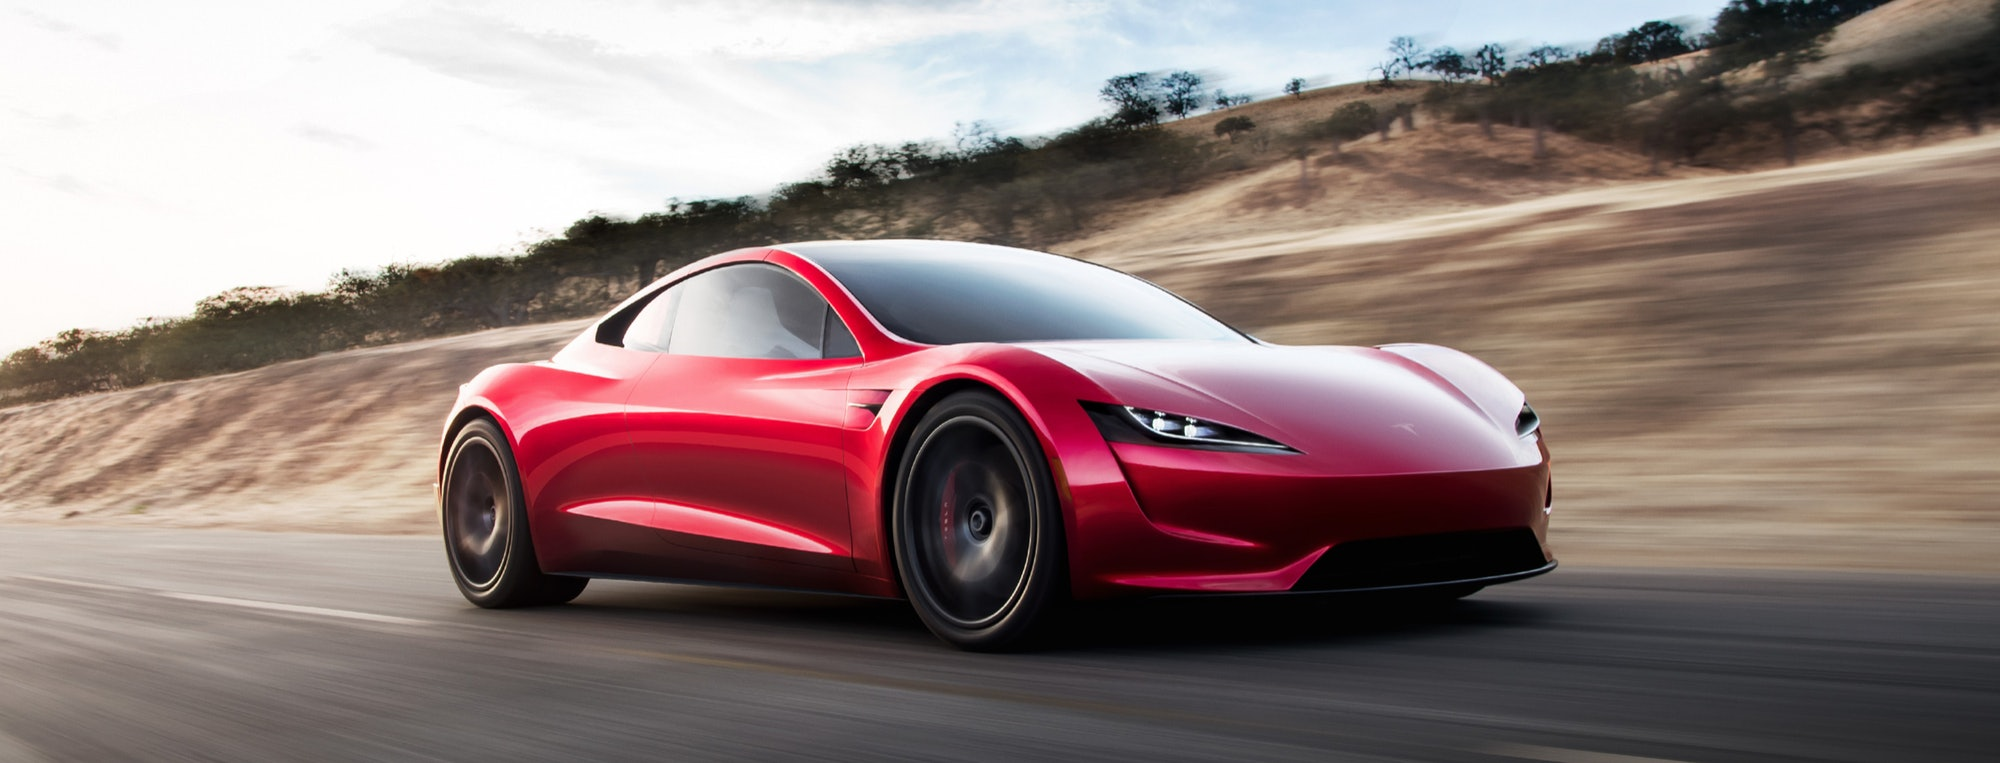 The new Roadster.